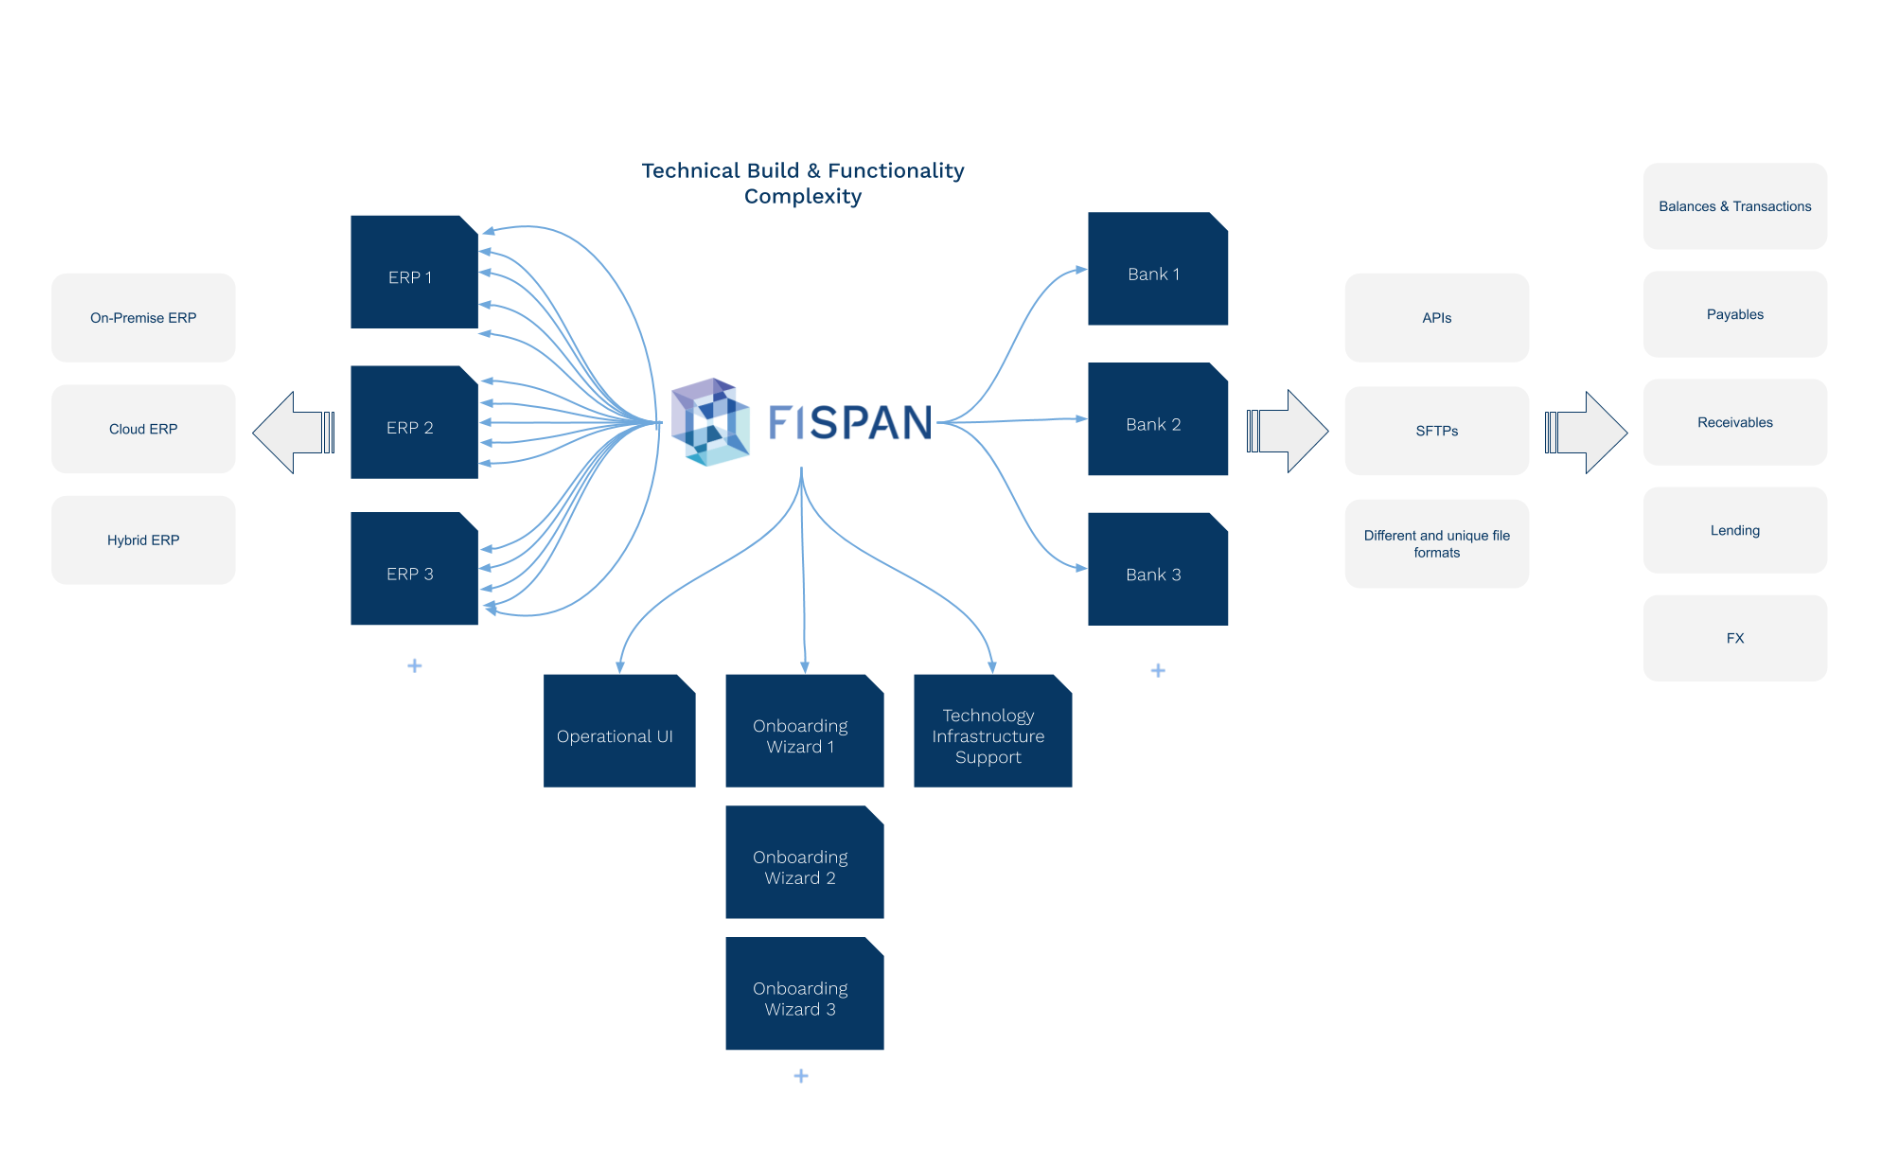 FISPAN Technical Build and Functionality Complexity